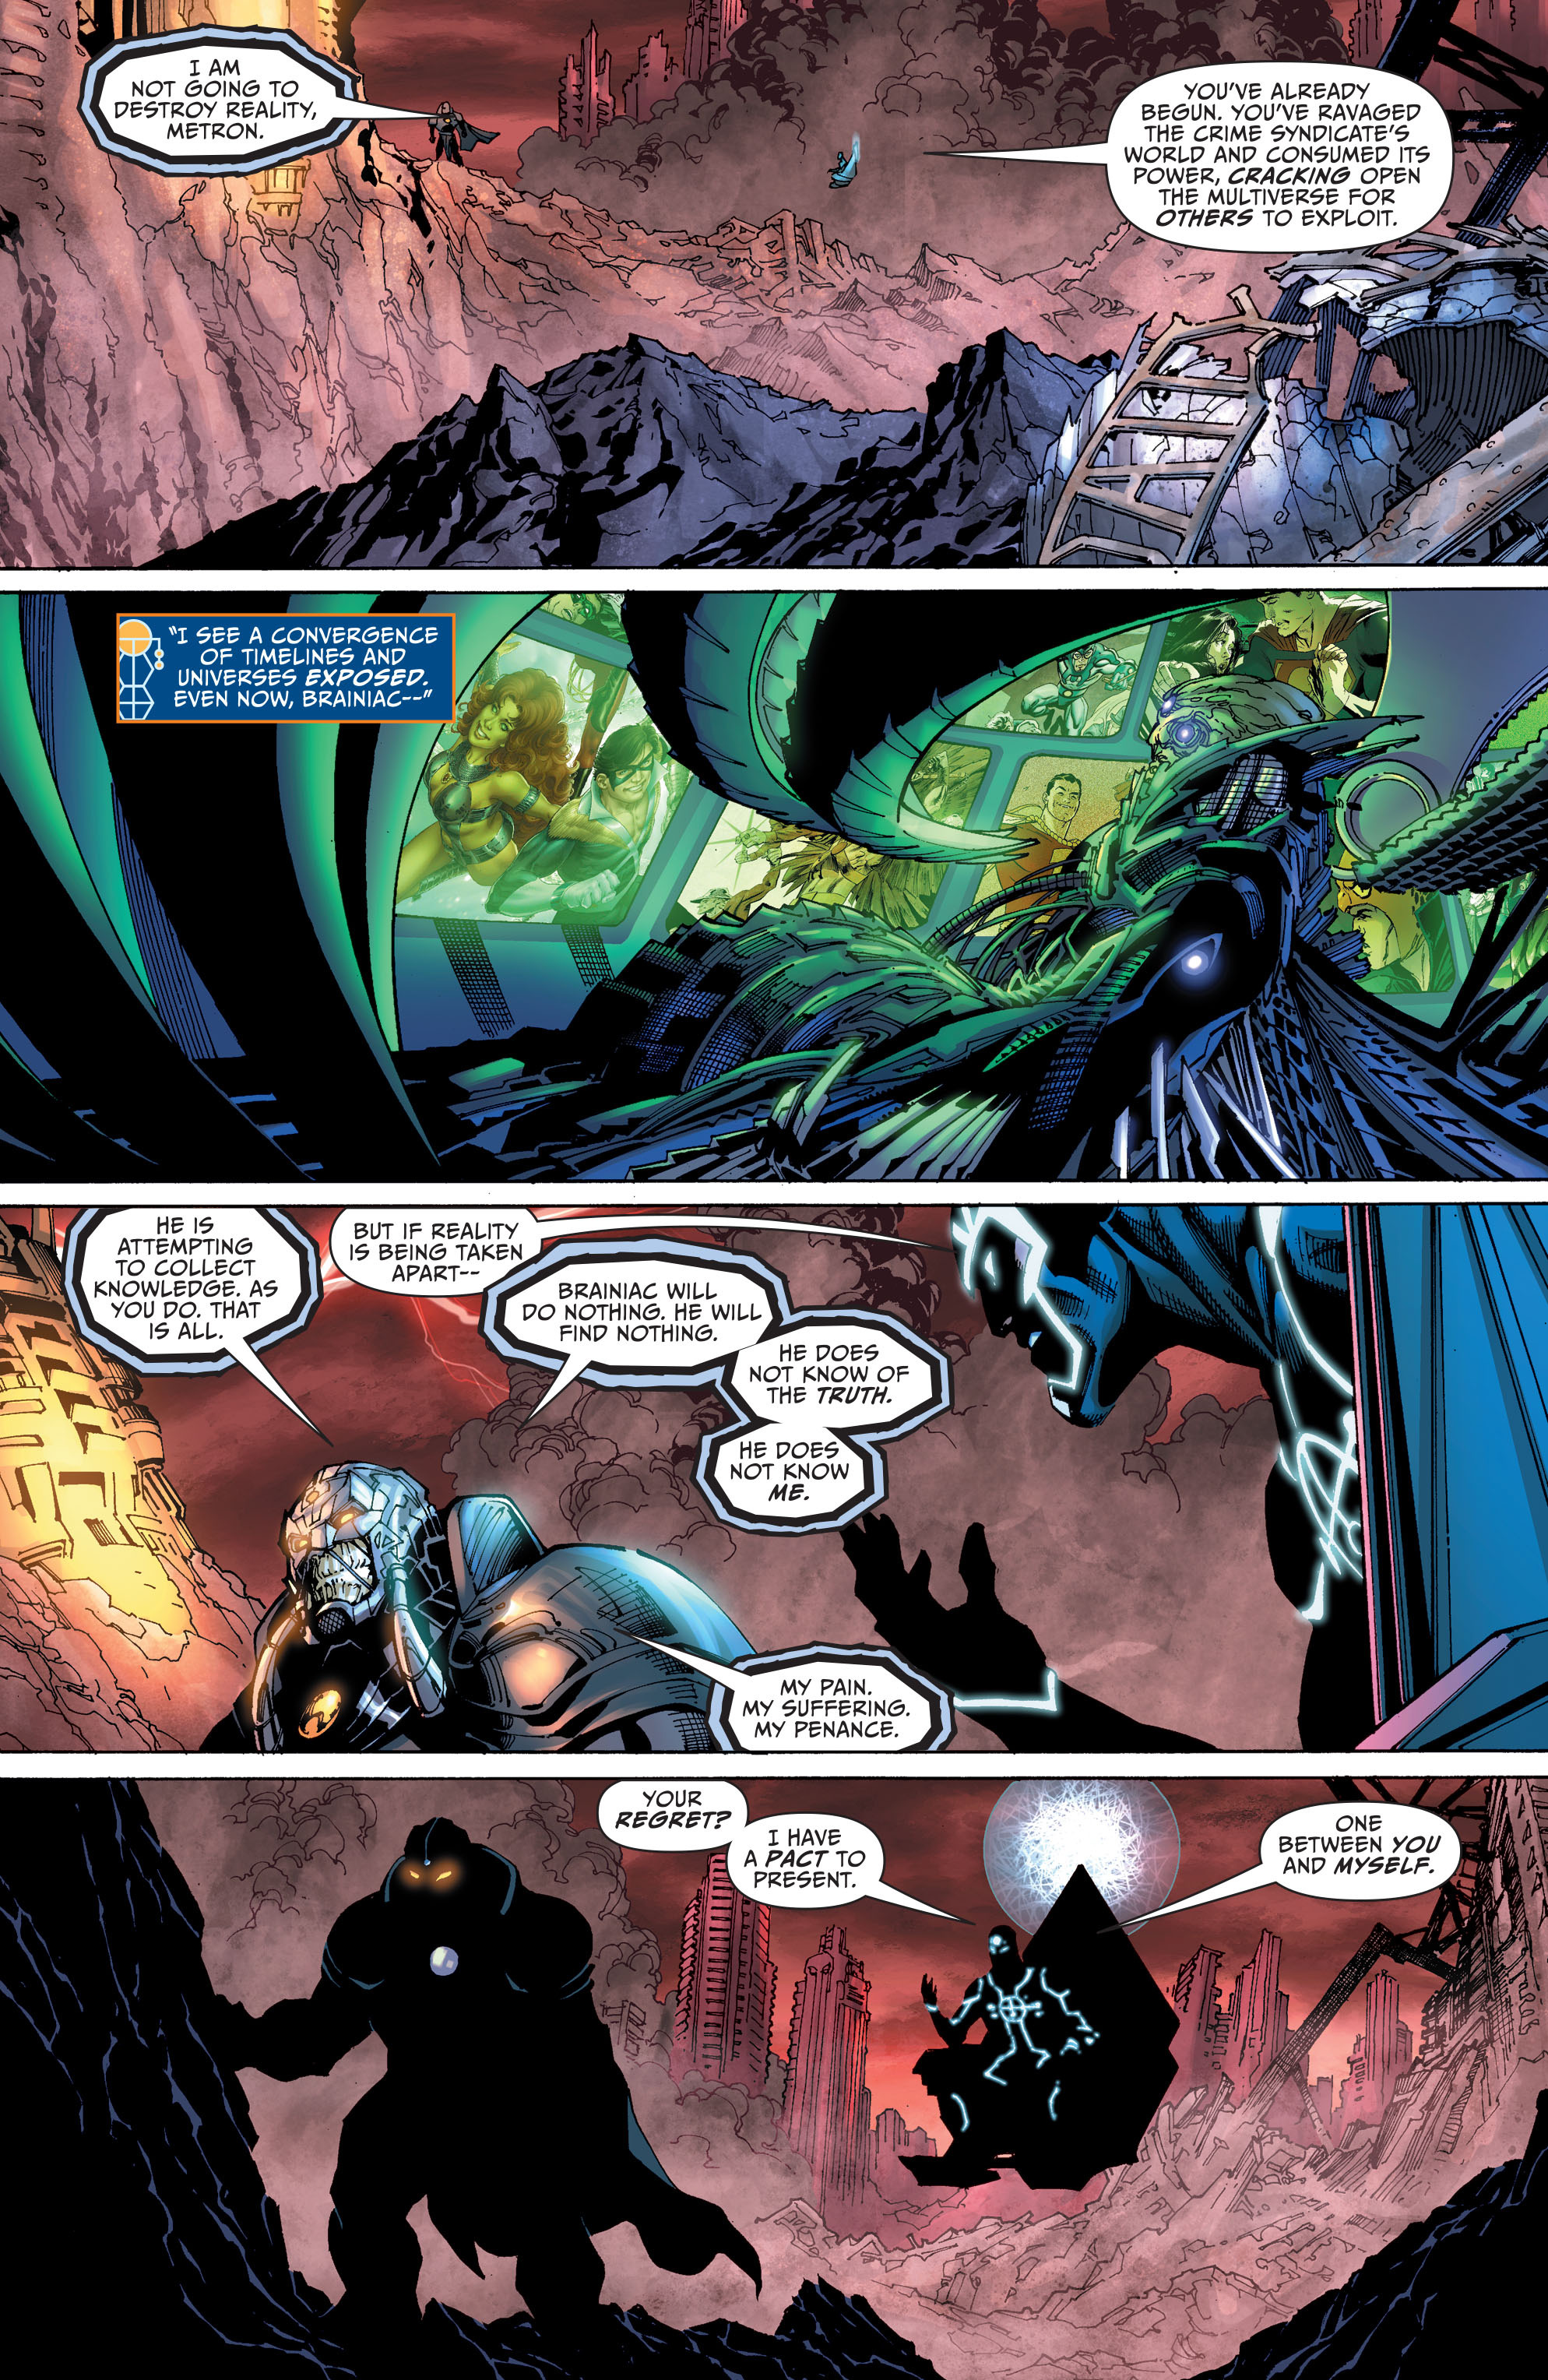 ... Justice League #40 Spoilers Darkseid War 4